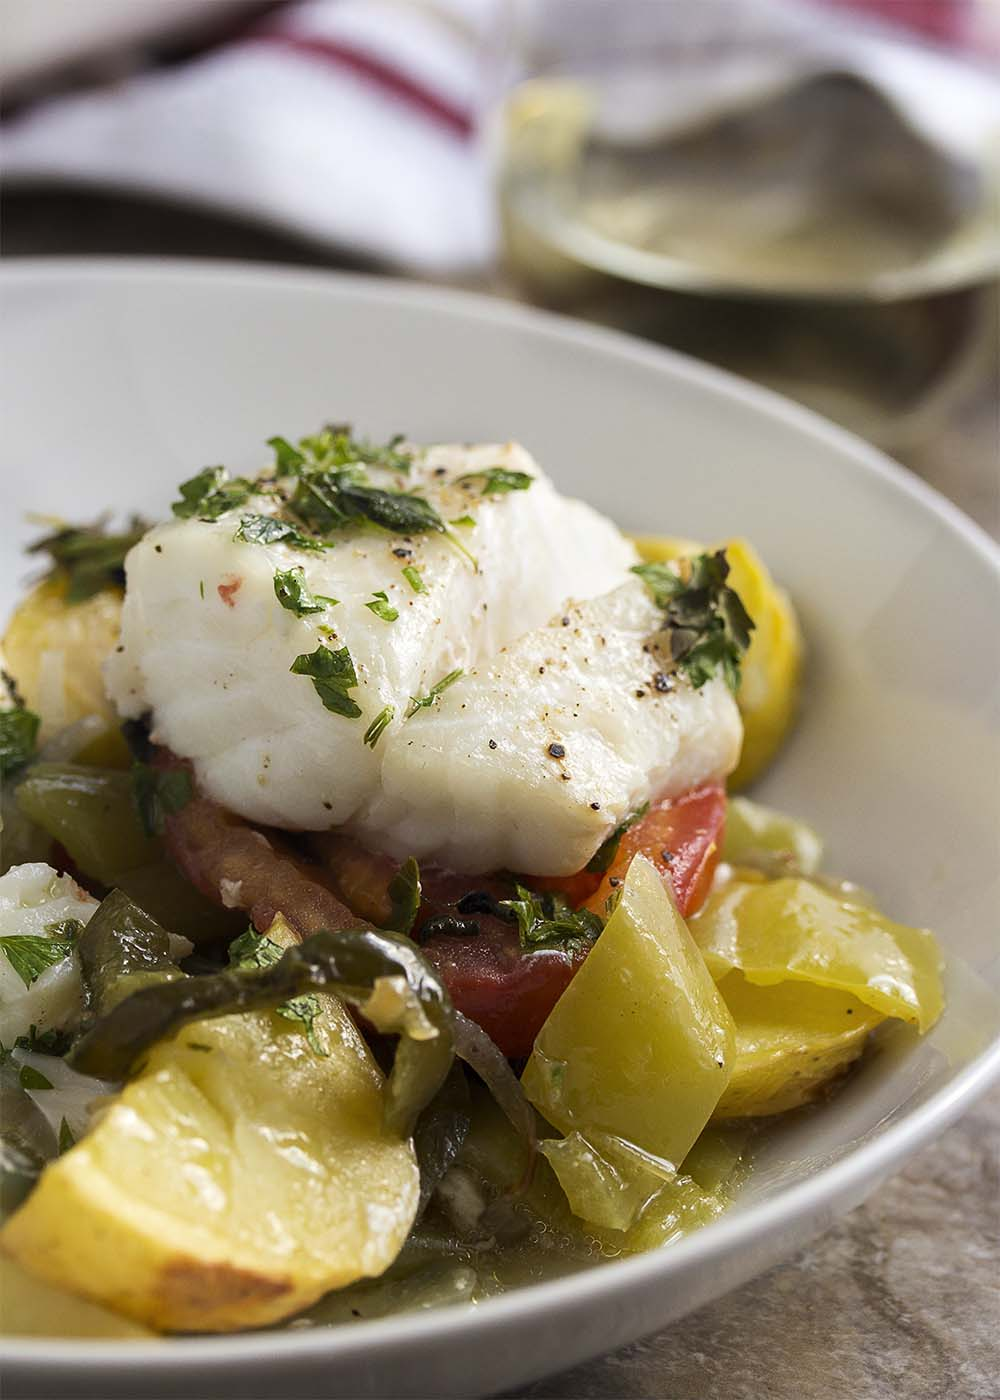 Close up of a piece of baked cod with Mediterranean vegetables underneath.